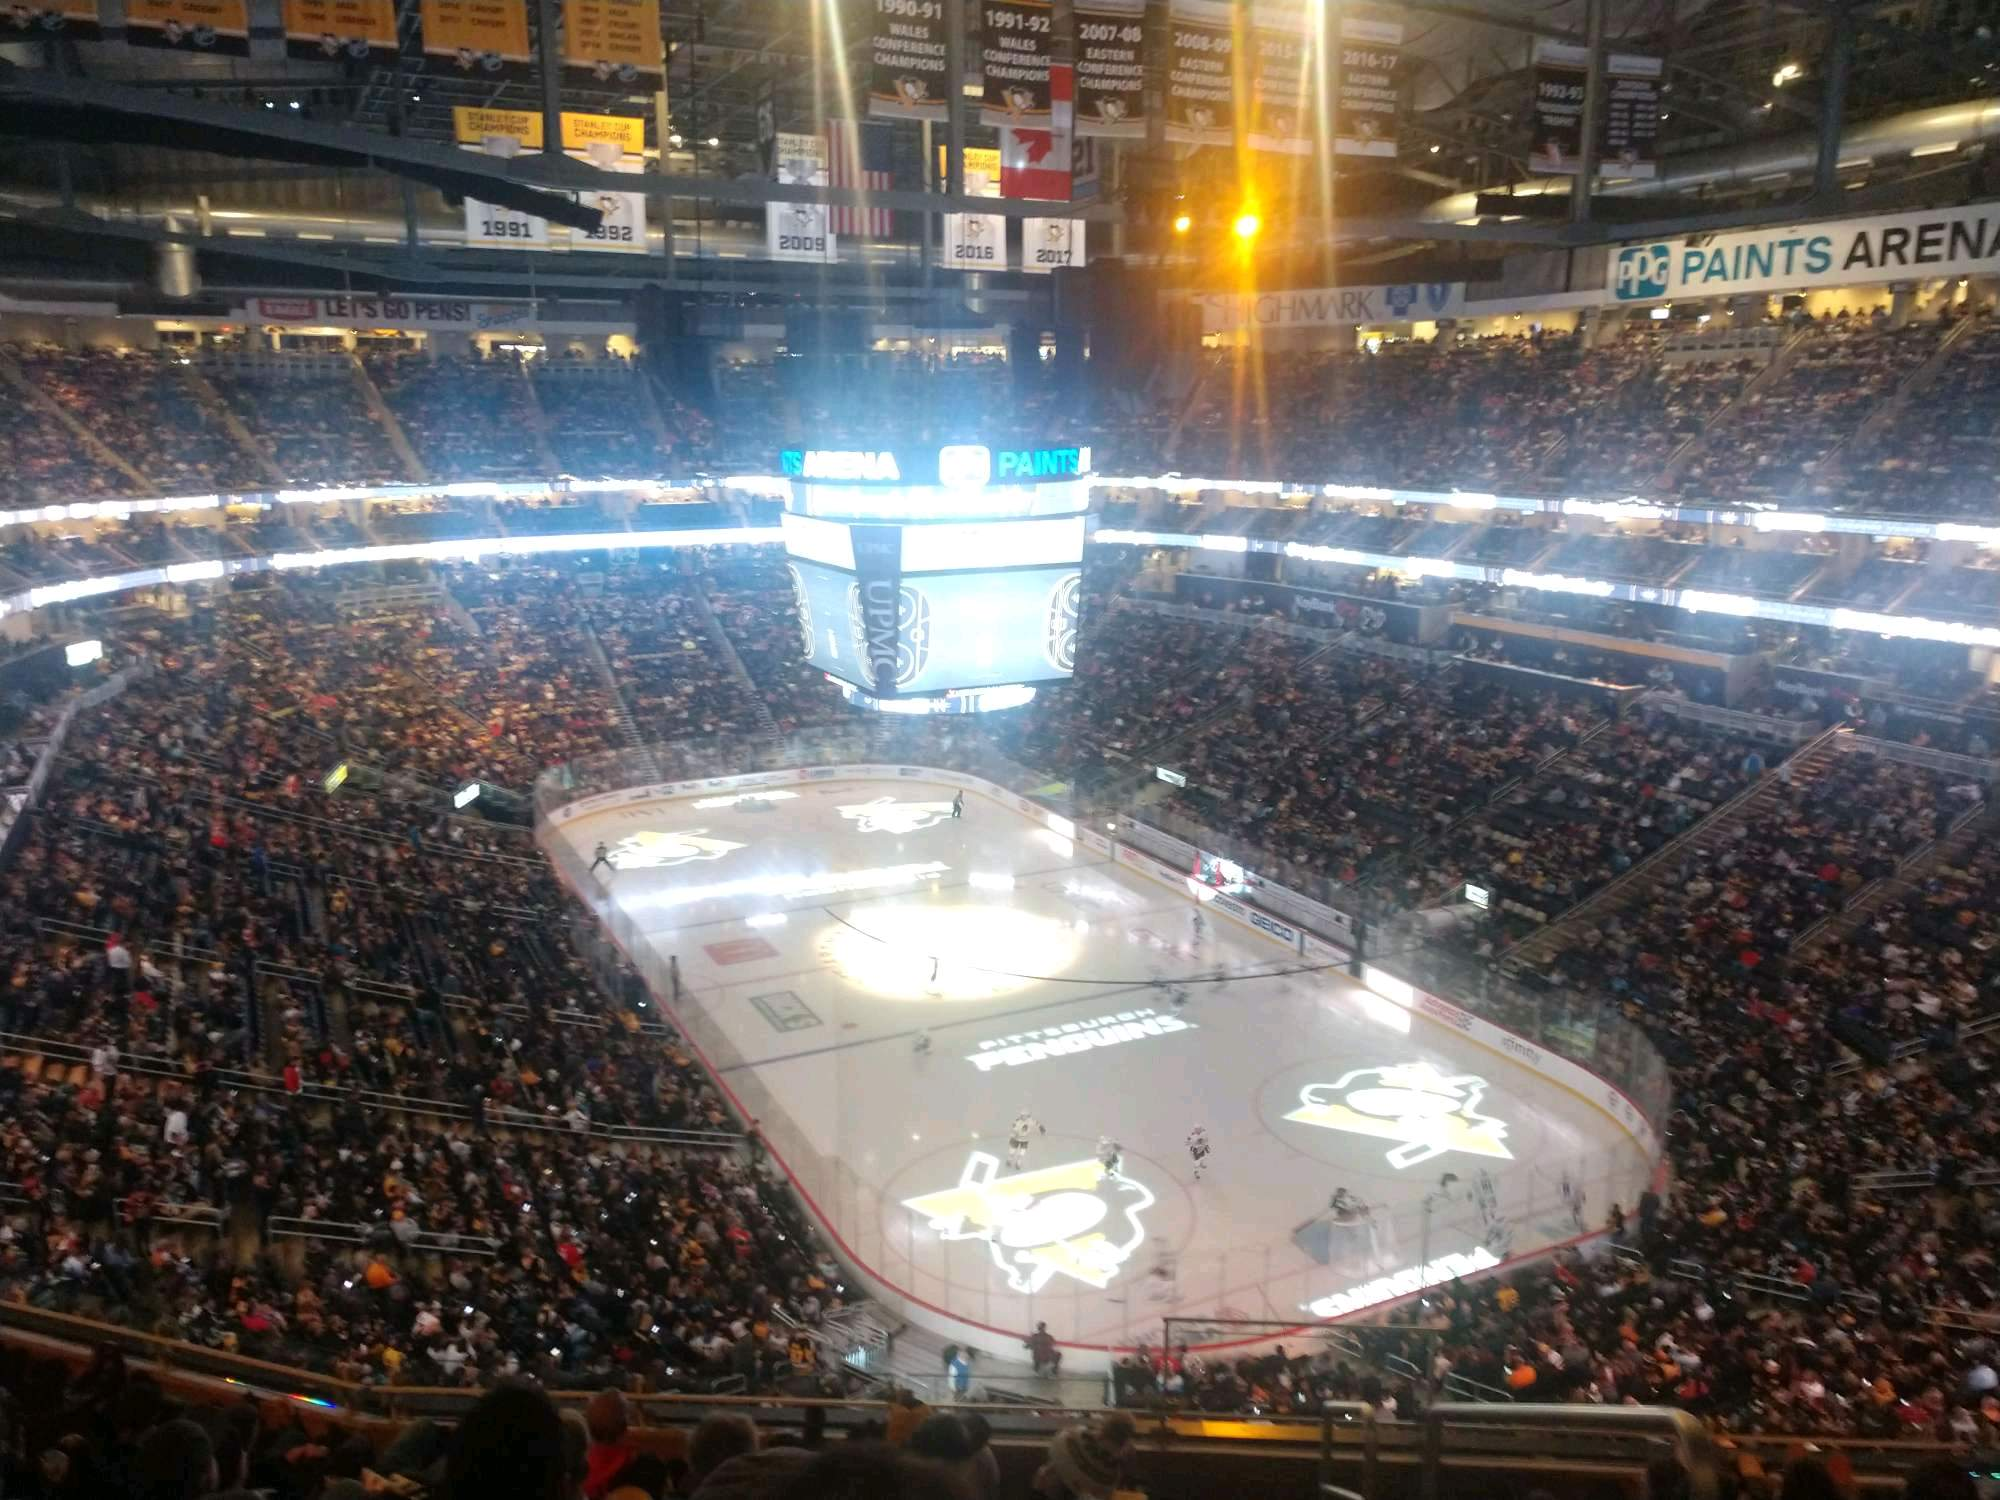 PPG Paints Arena Section 214 Row H Seat 1